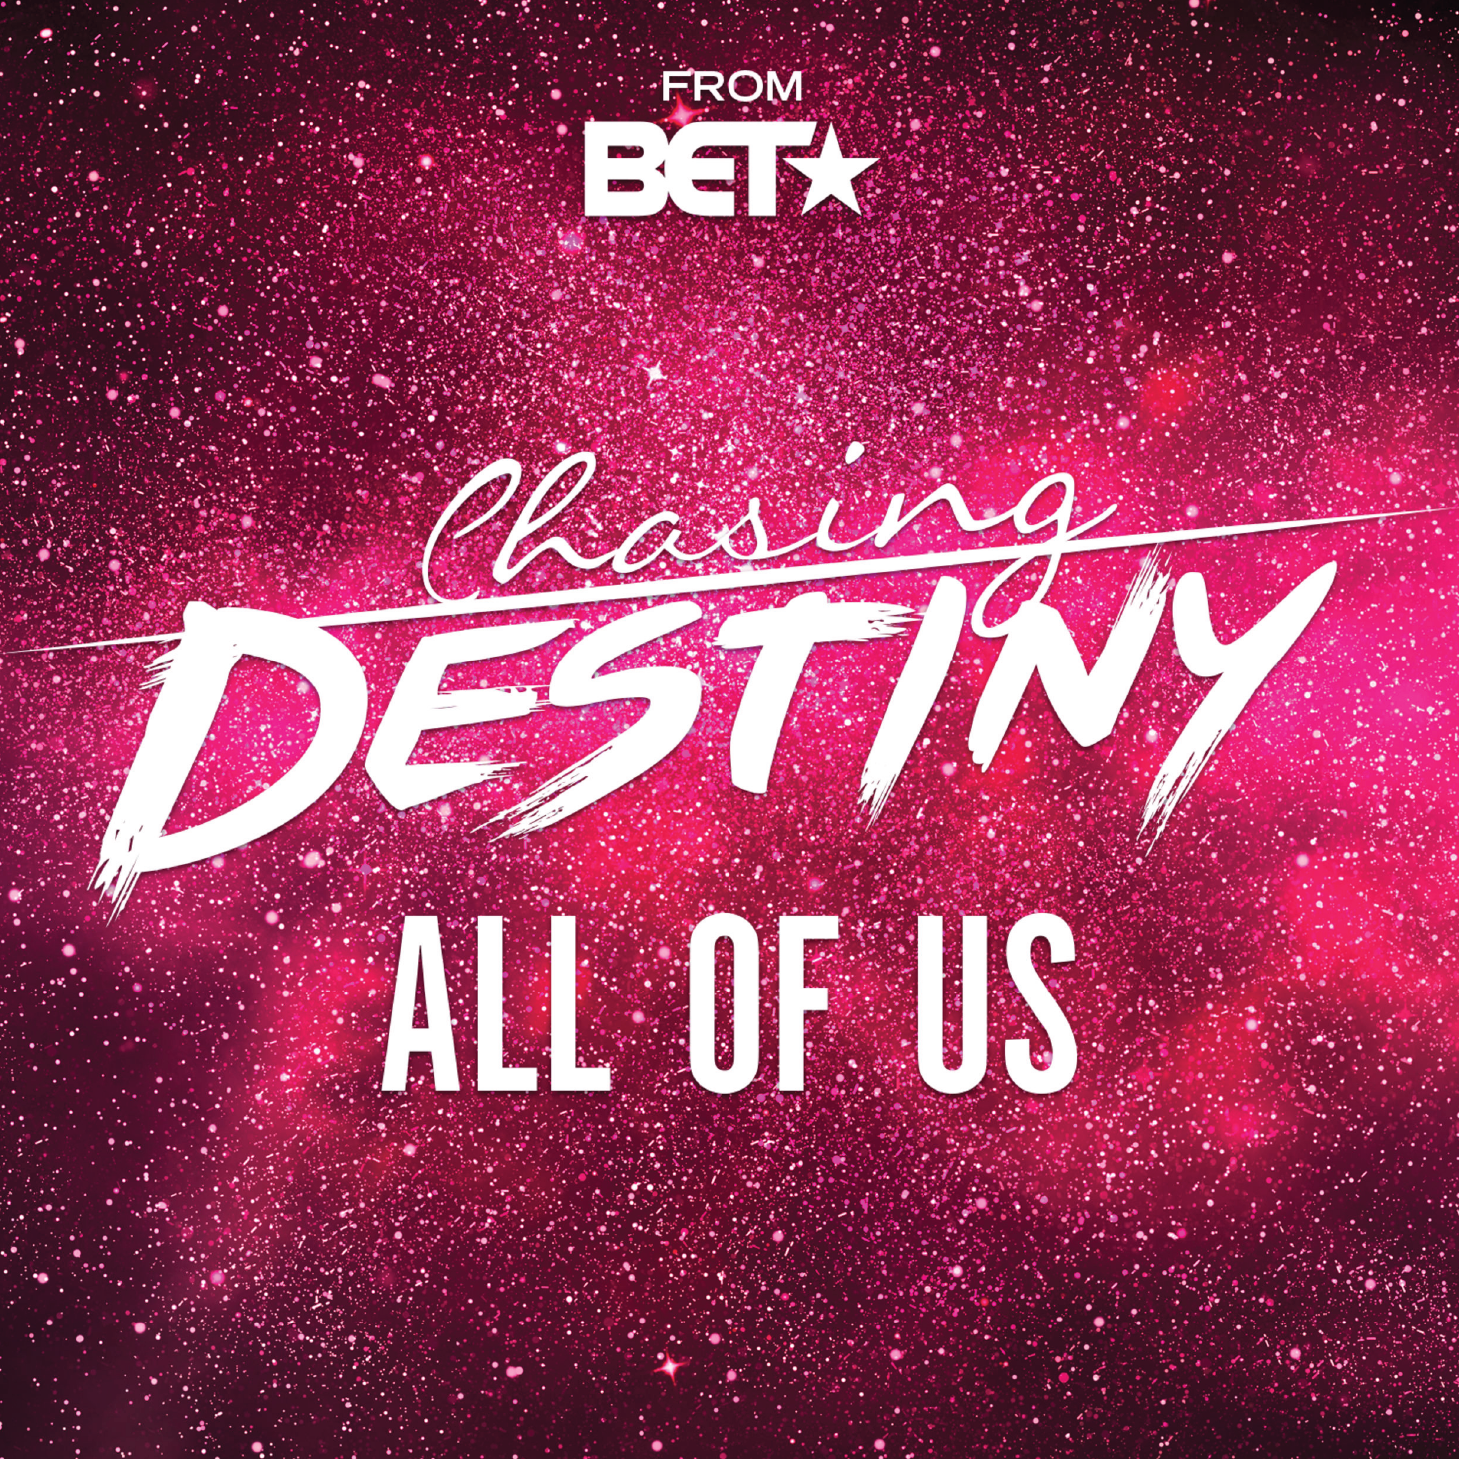 Music Thumbnails 1916_2_All Of Us - Chasing Destiny.png